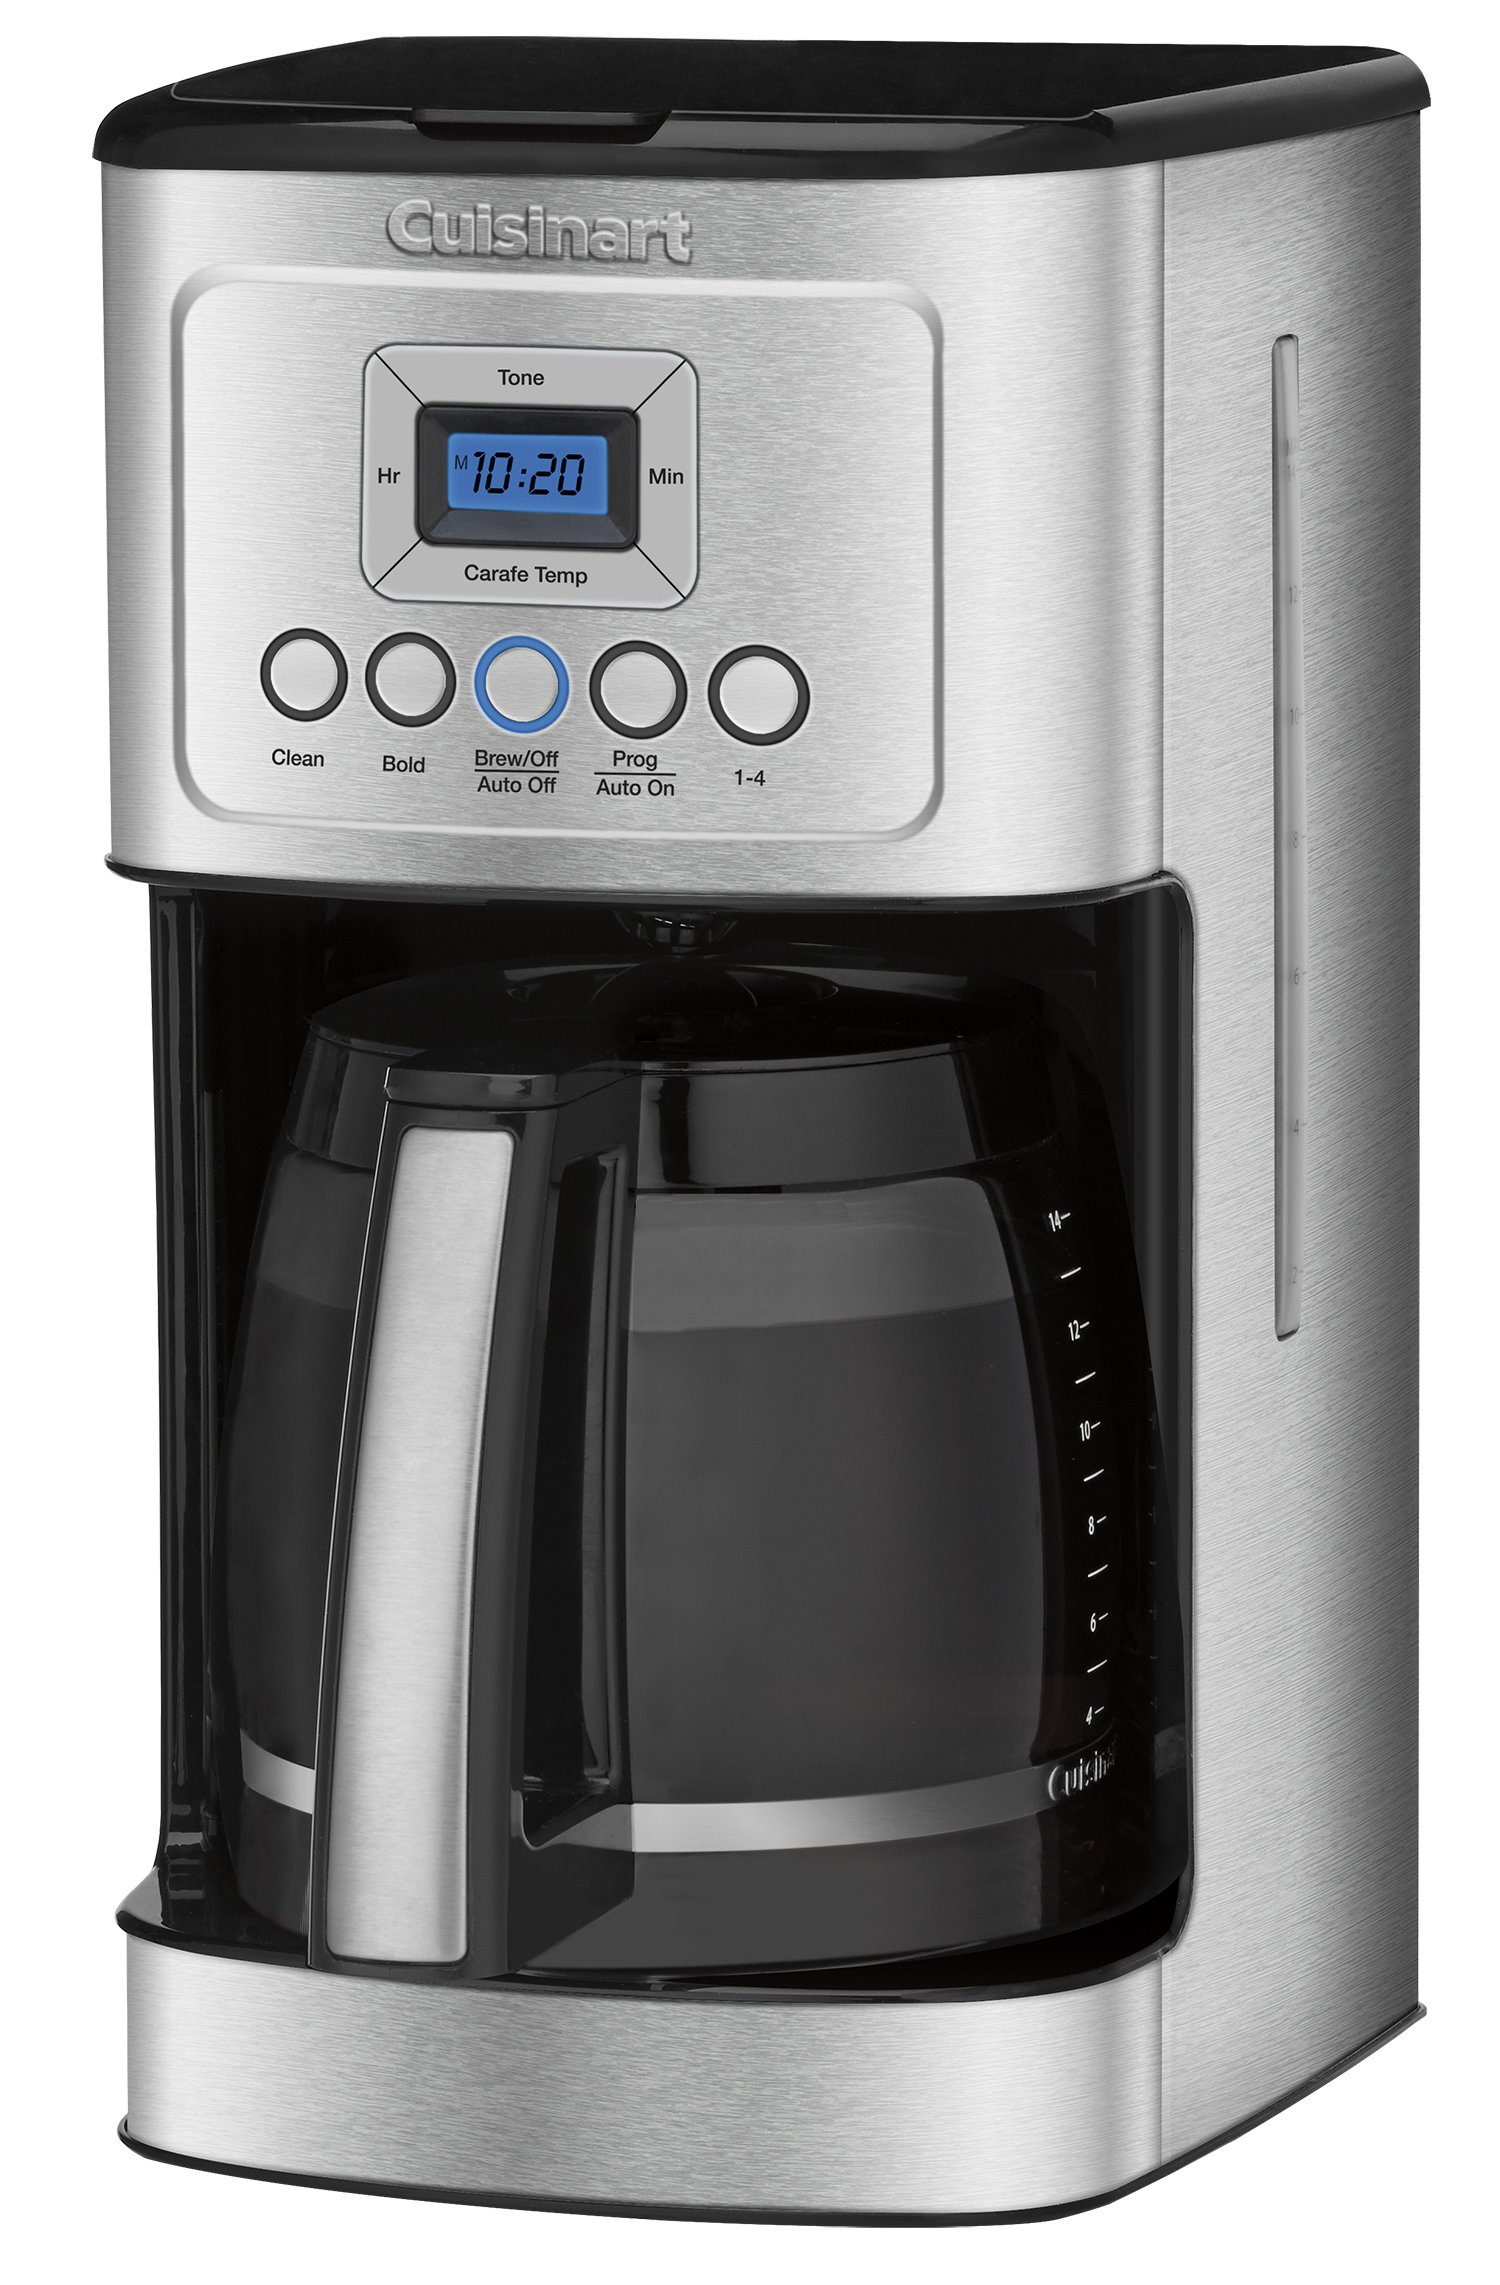 Cuisinart DCC-3200 PerfecTemp Programmable Coffeemaker, 14 Cup, Stainless Steel/Black by Cuisinart (Image #3)